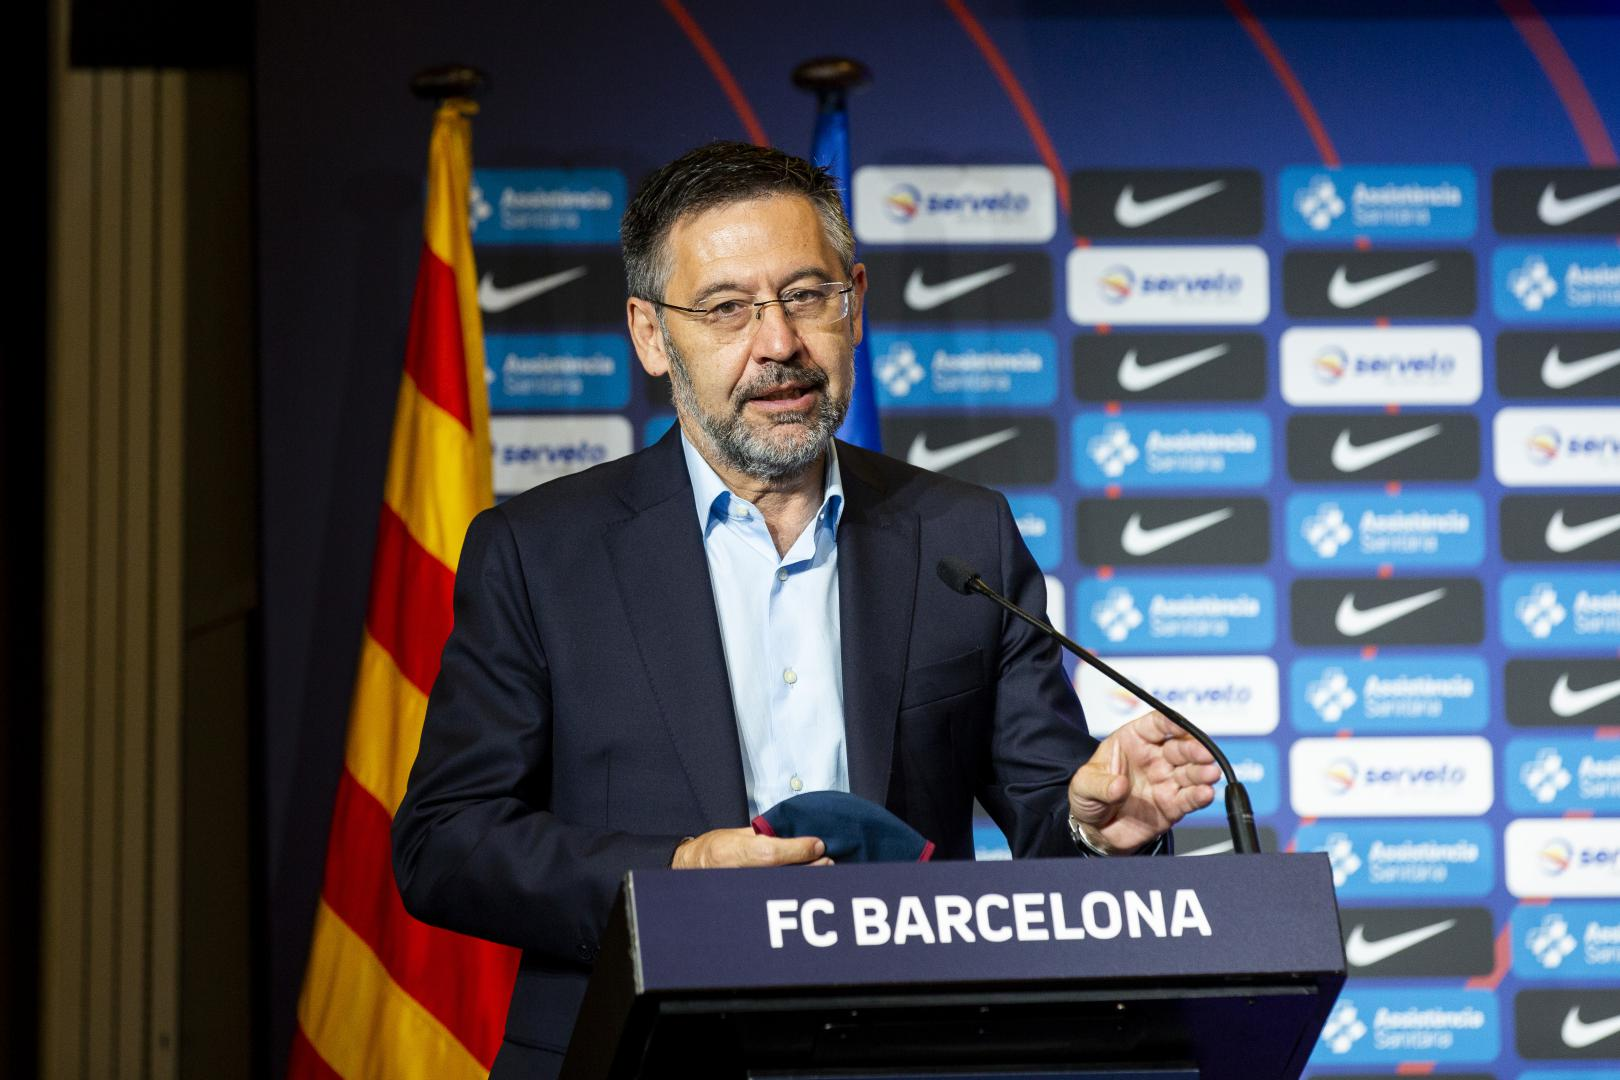 Bartomeu: 'There will be decisions'